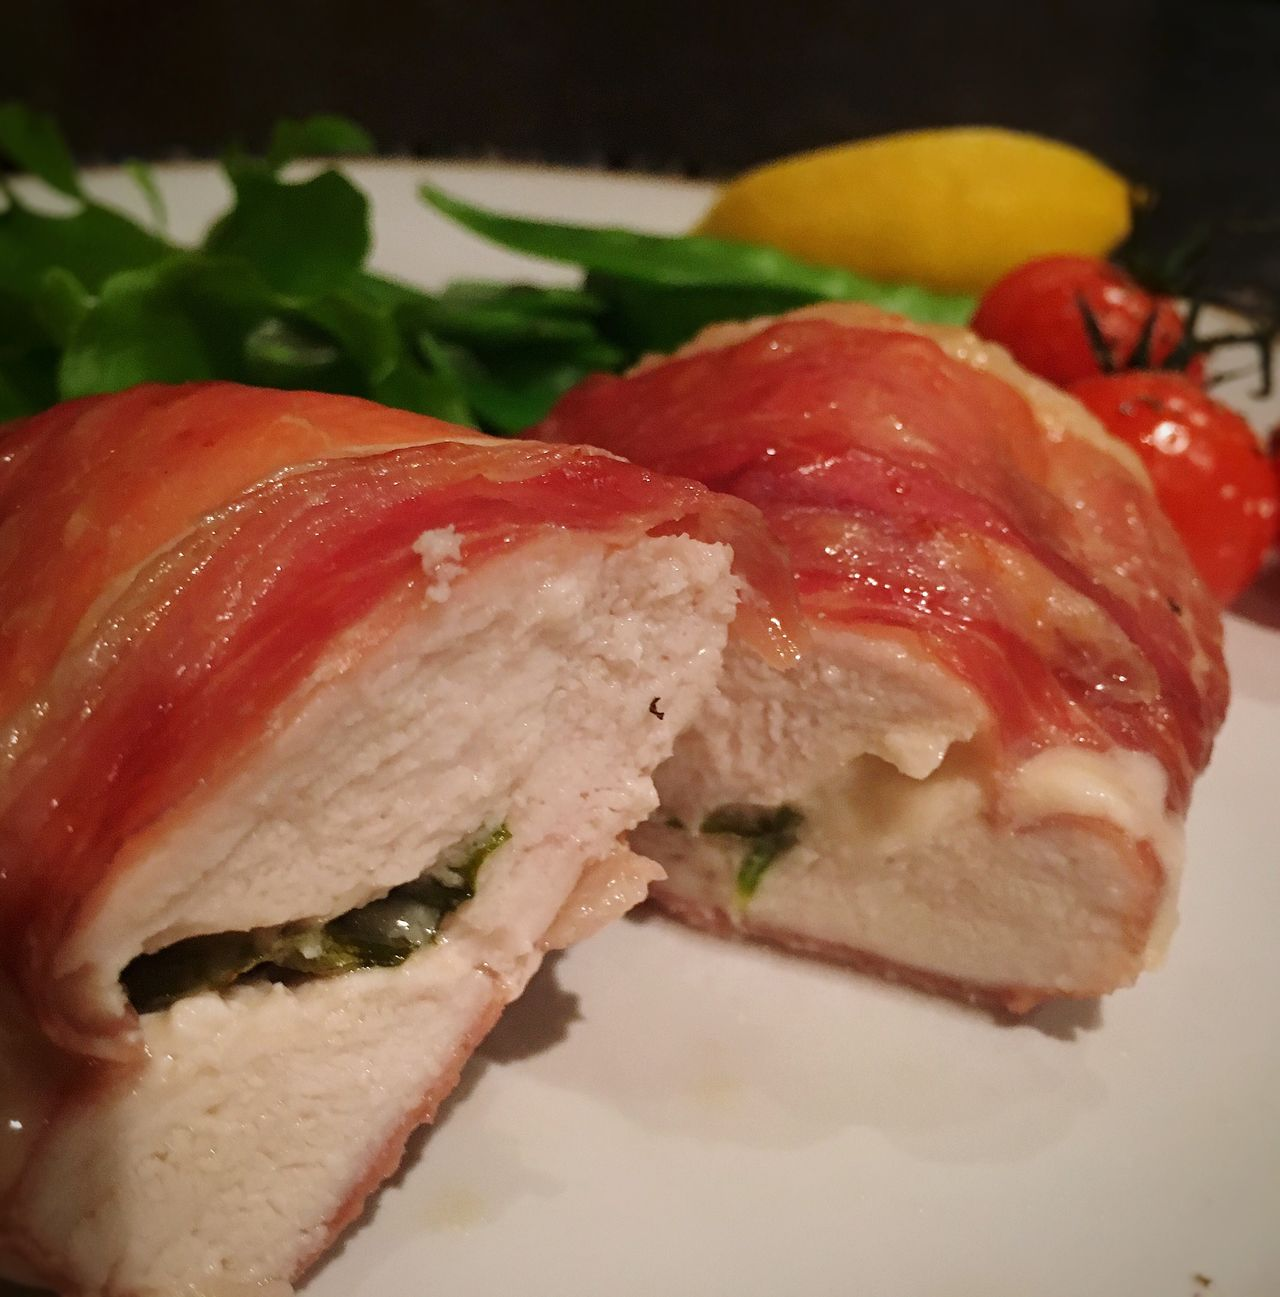 Parma ham wrapped chicken... Foodblogger Foodblogday2015 Food Photography Parmaham Chickenfillet Gruyere Cheese Basil Homemade Yum!